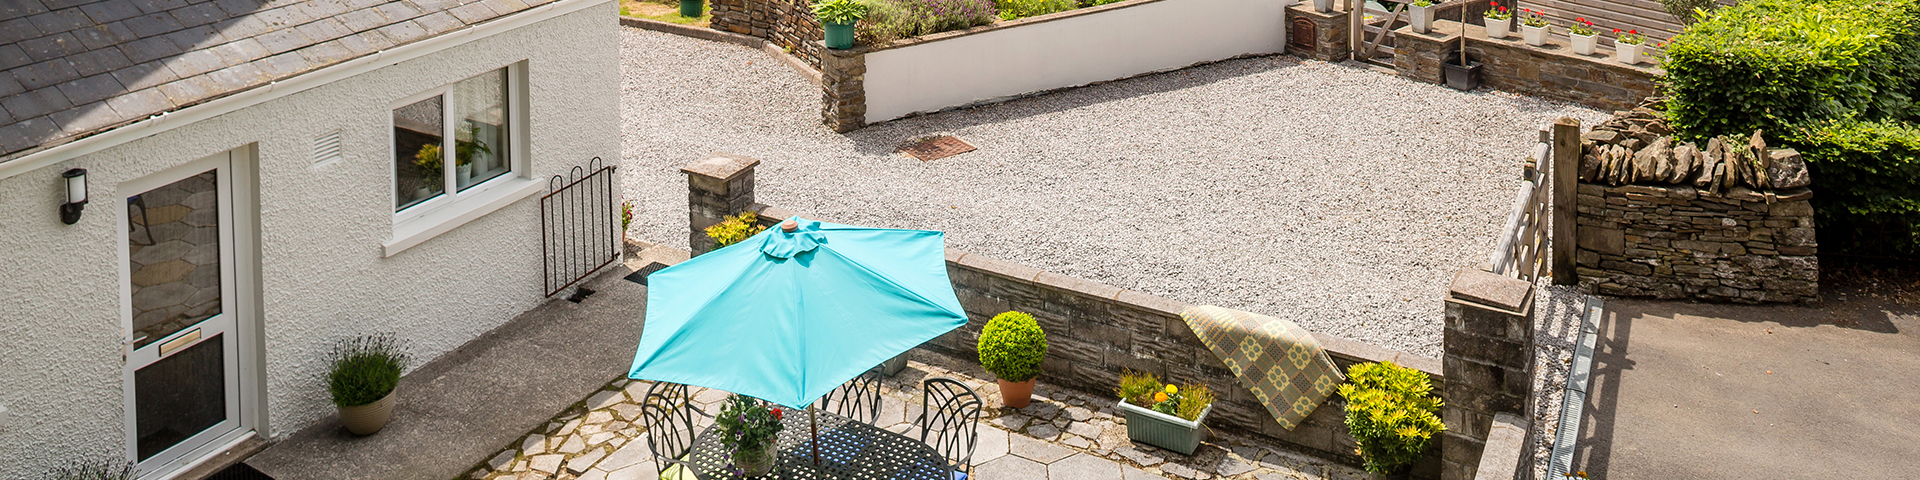 self catering brecon beacons, Holiday cottages swansea